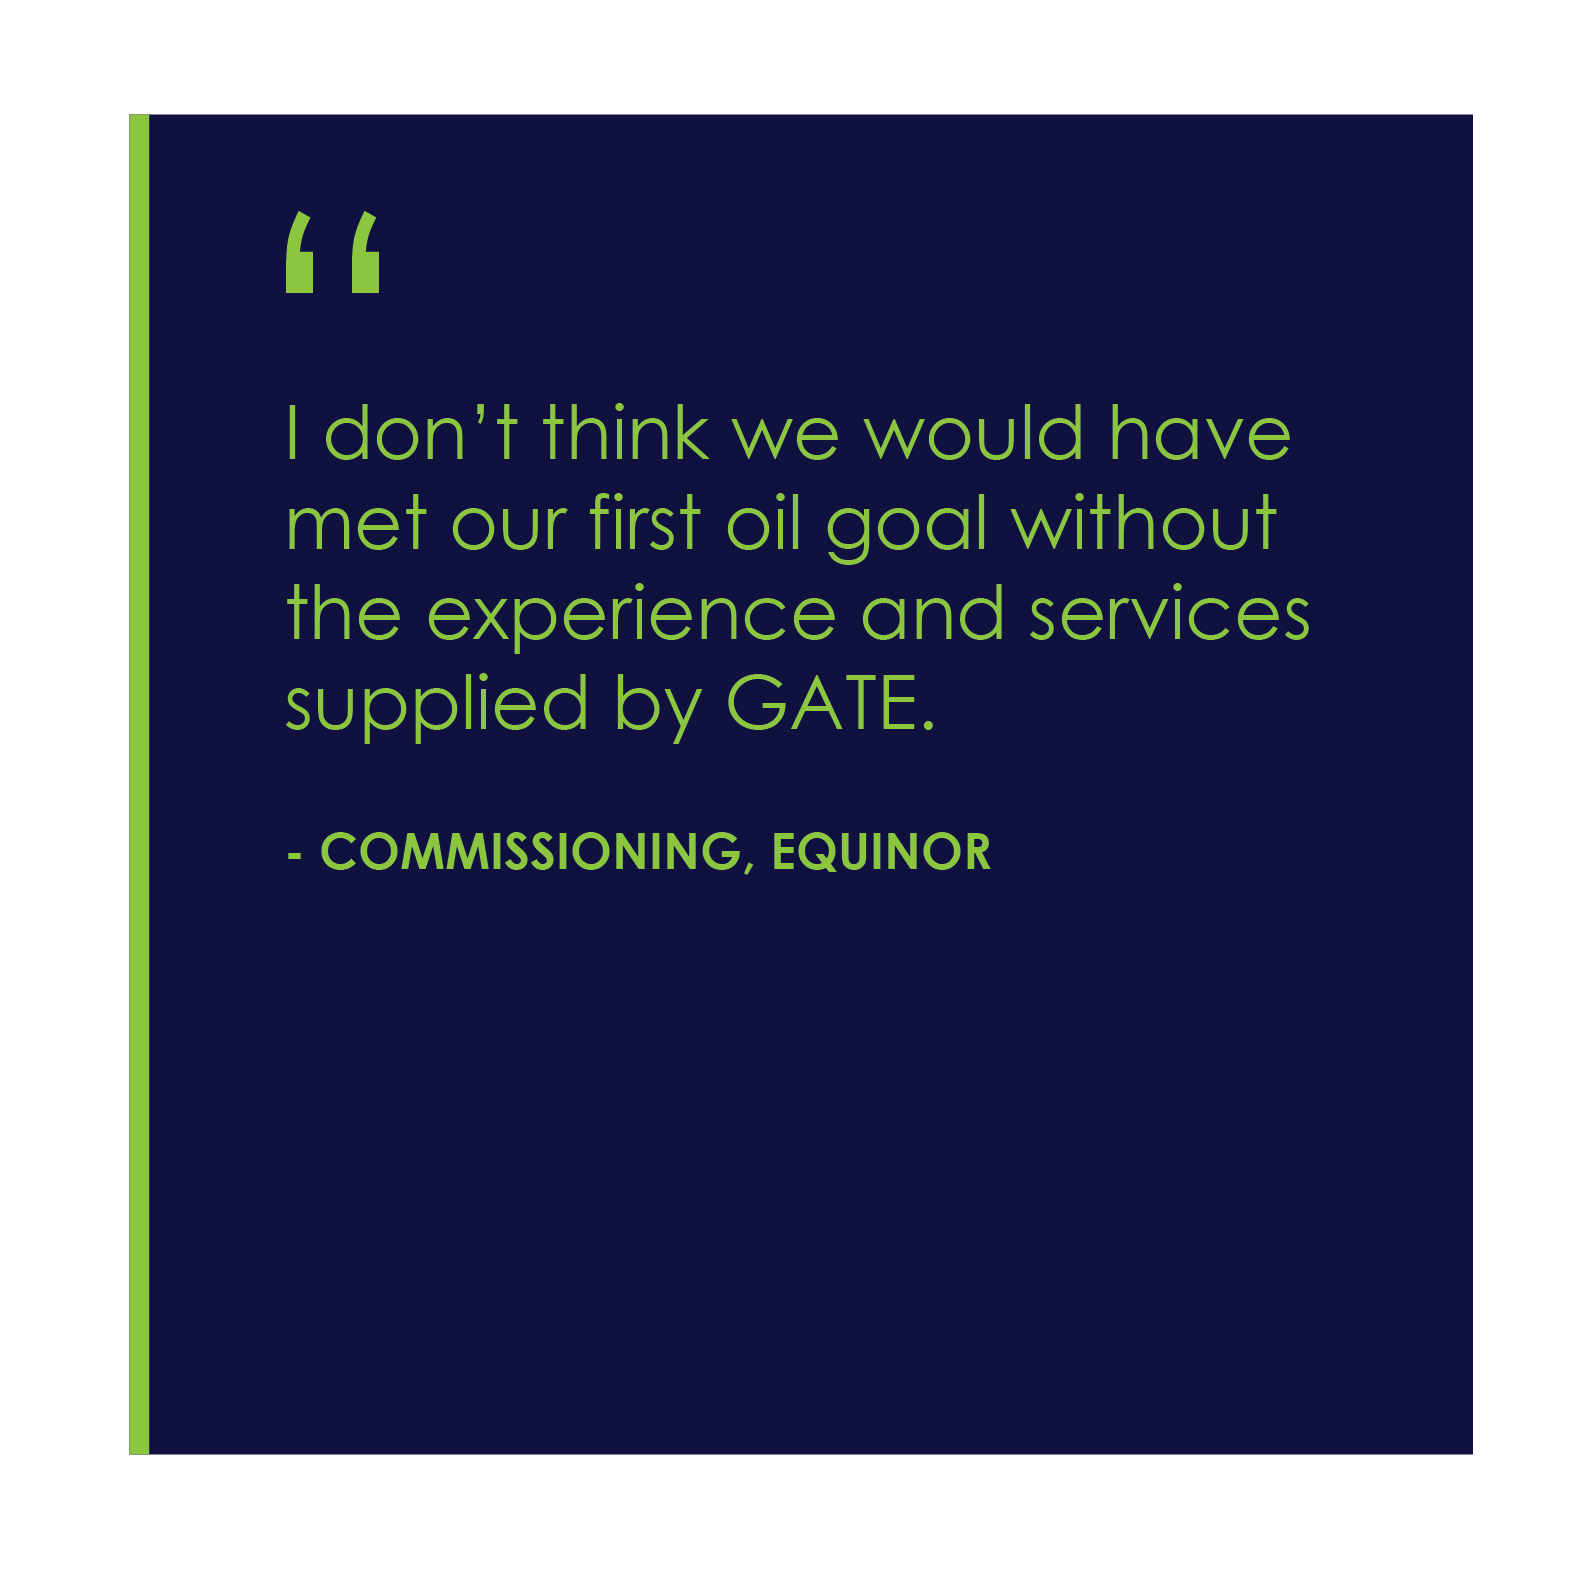 GATE Energy Website Quotes-07.png